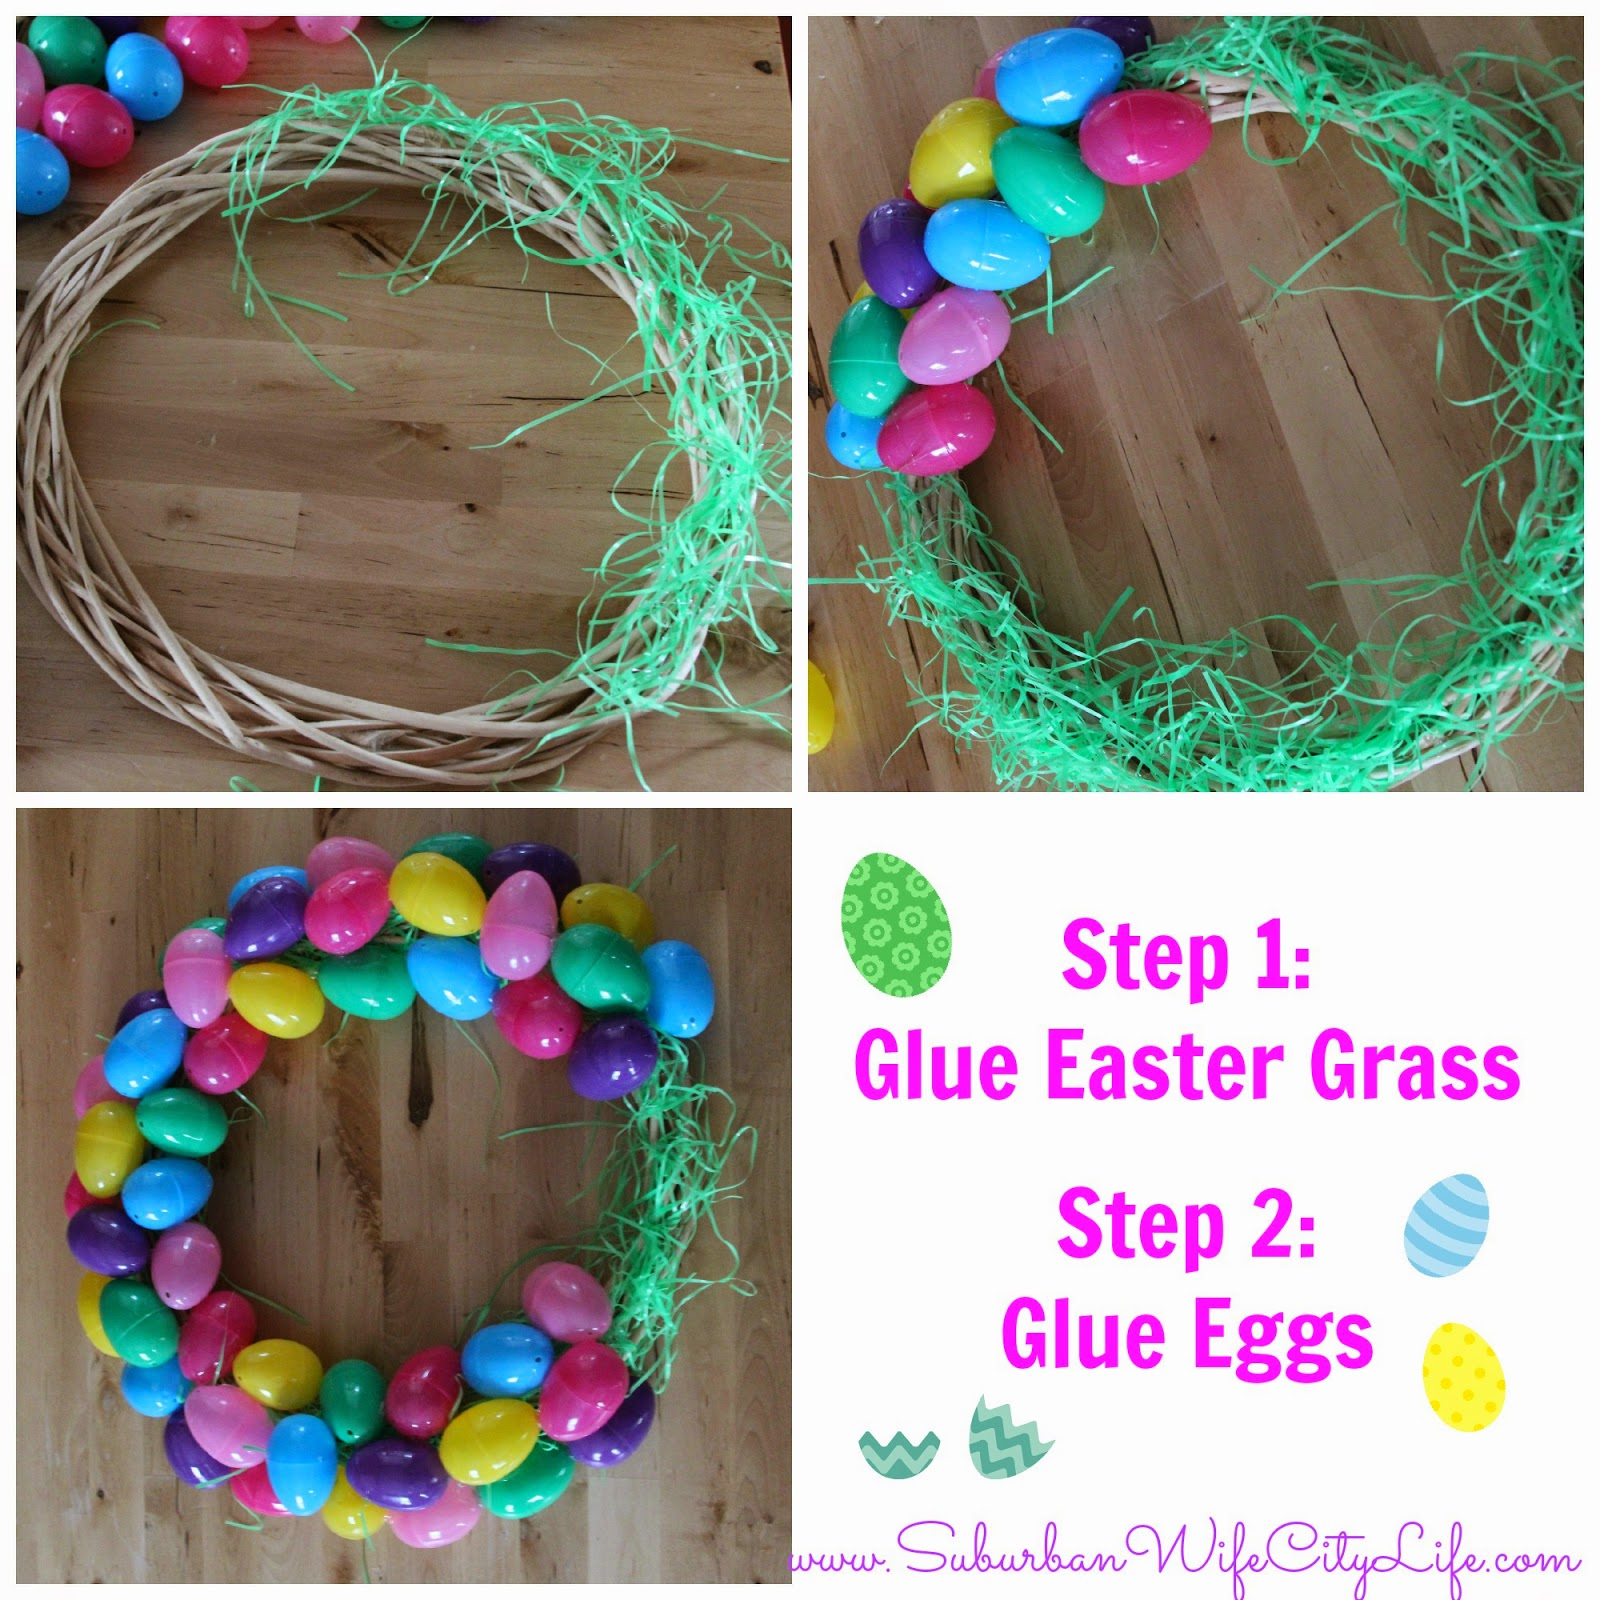 Step 1 Hot Glue Easter Grass Around The Front Of Wreath You Can Either Keep It Light Or Make Heavy Whatever Like